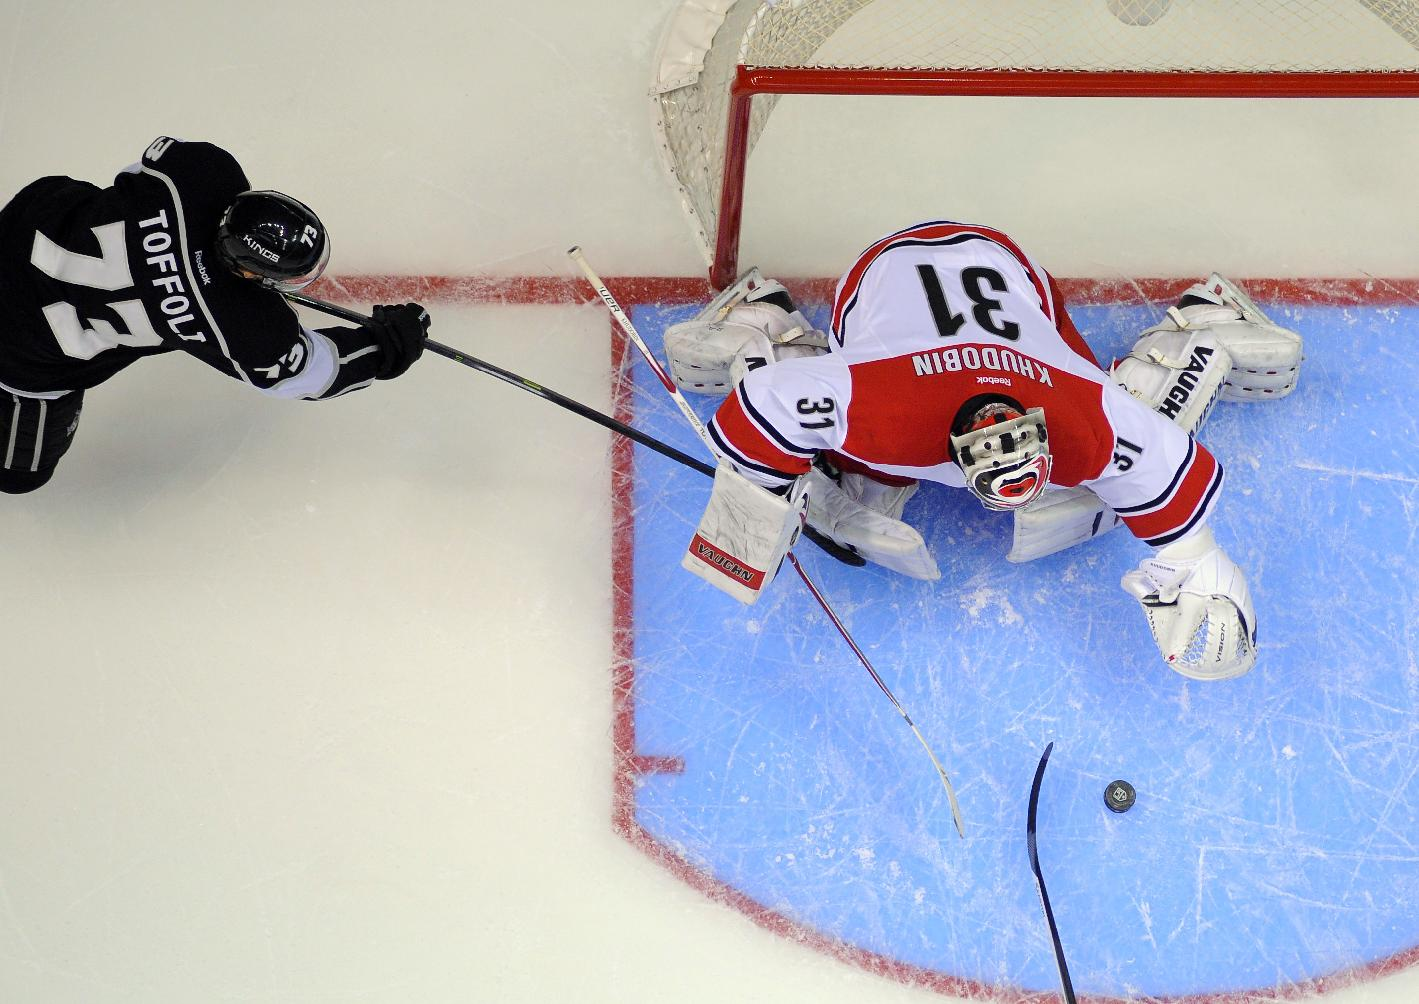 Los Angeles Kings center Tyler Toffoli, left, tries to get a shot in on Carolina Hurricanes goalie Anton Khudobin, of Kazakhstan, during the first period of an NHL hockey game, Saturday, March 1, 2014, in Los Angeles